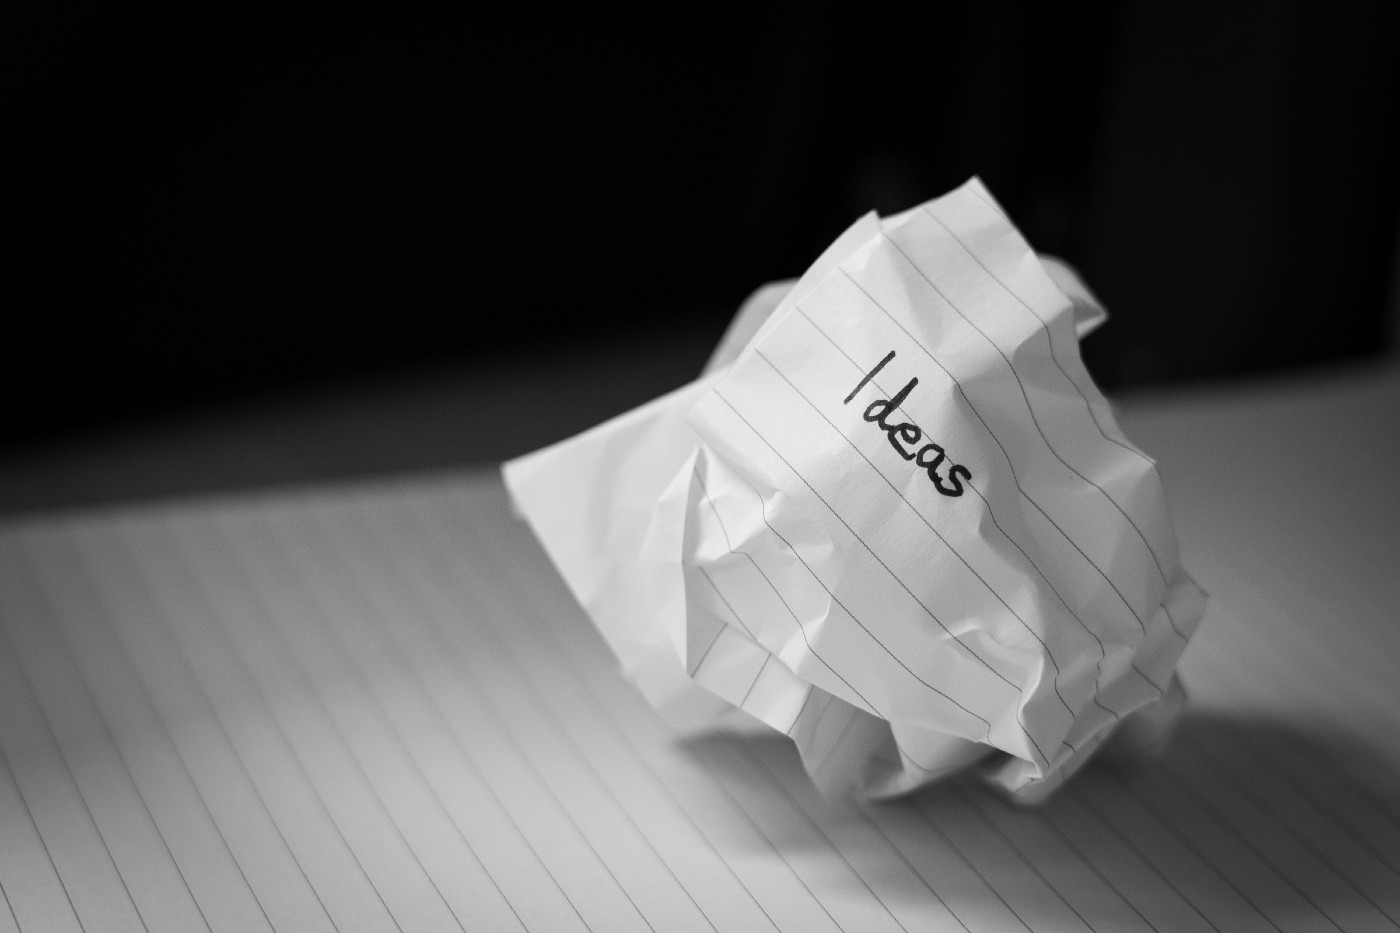 Scrunched up piece of paper with ideas written on it